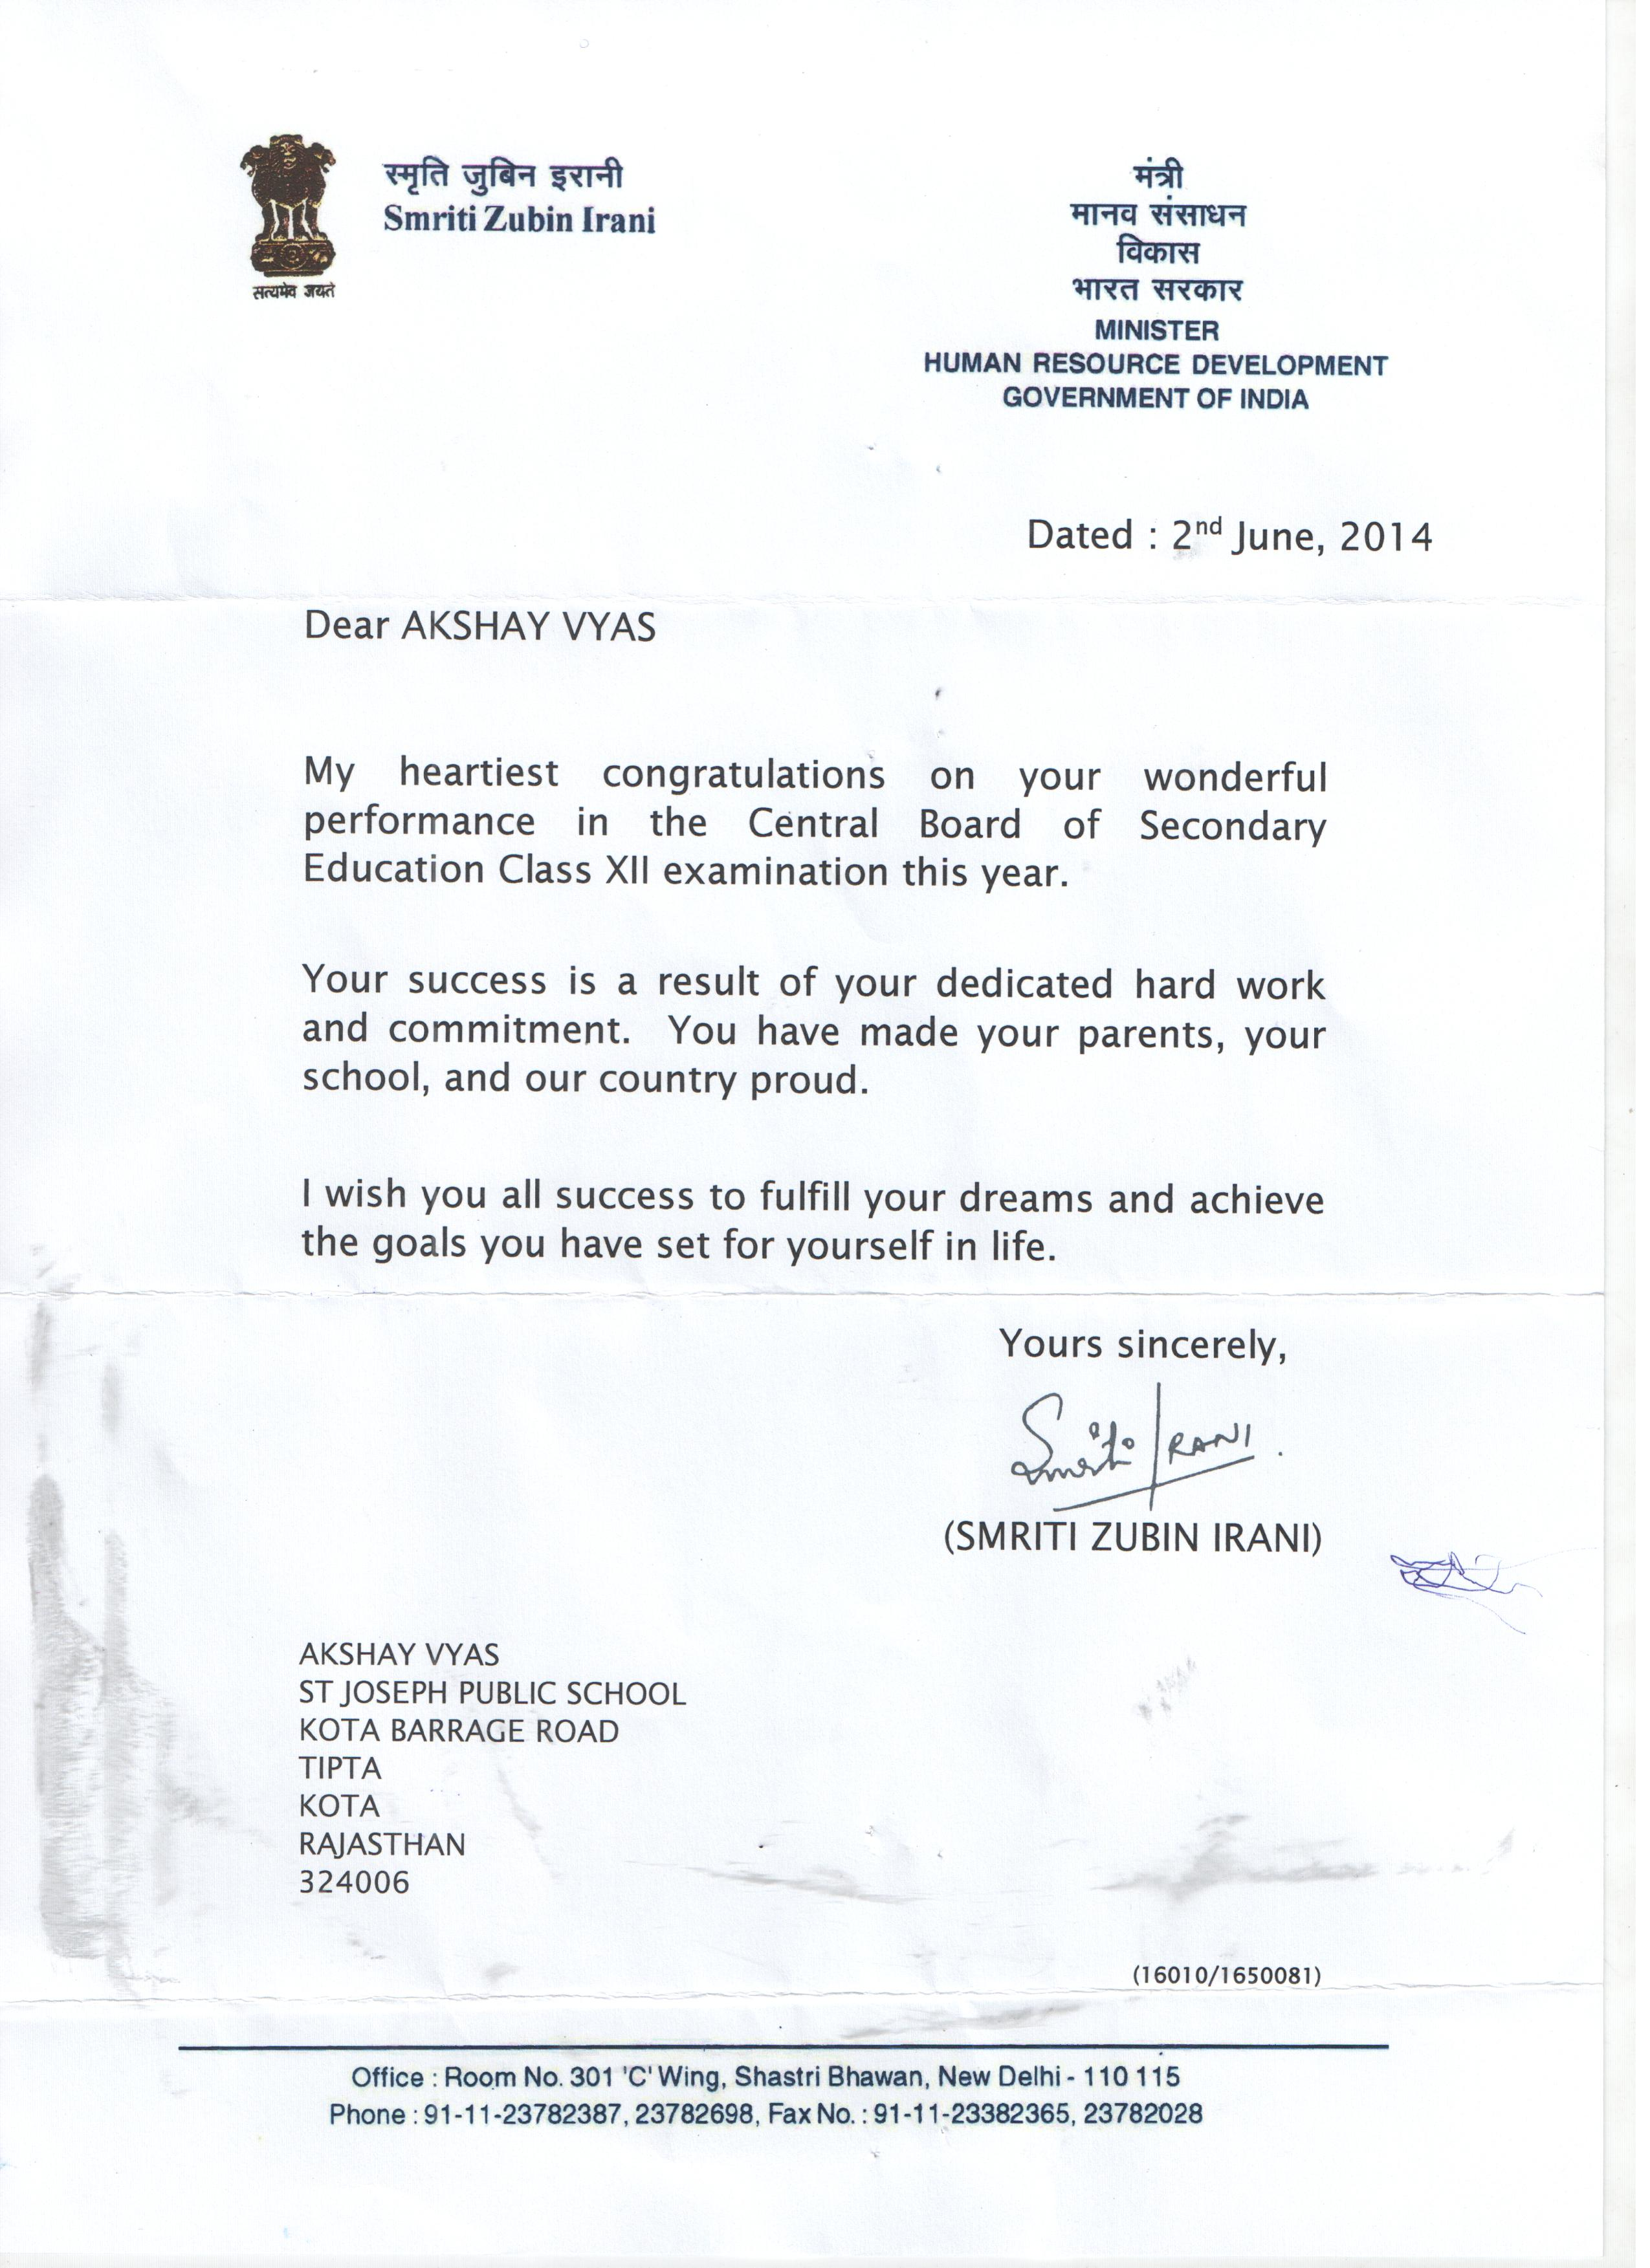 Letter from Minister HRD